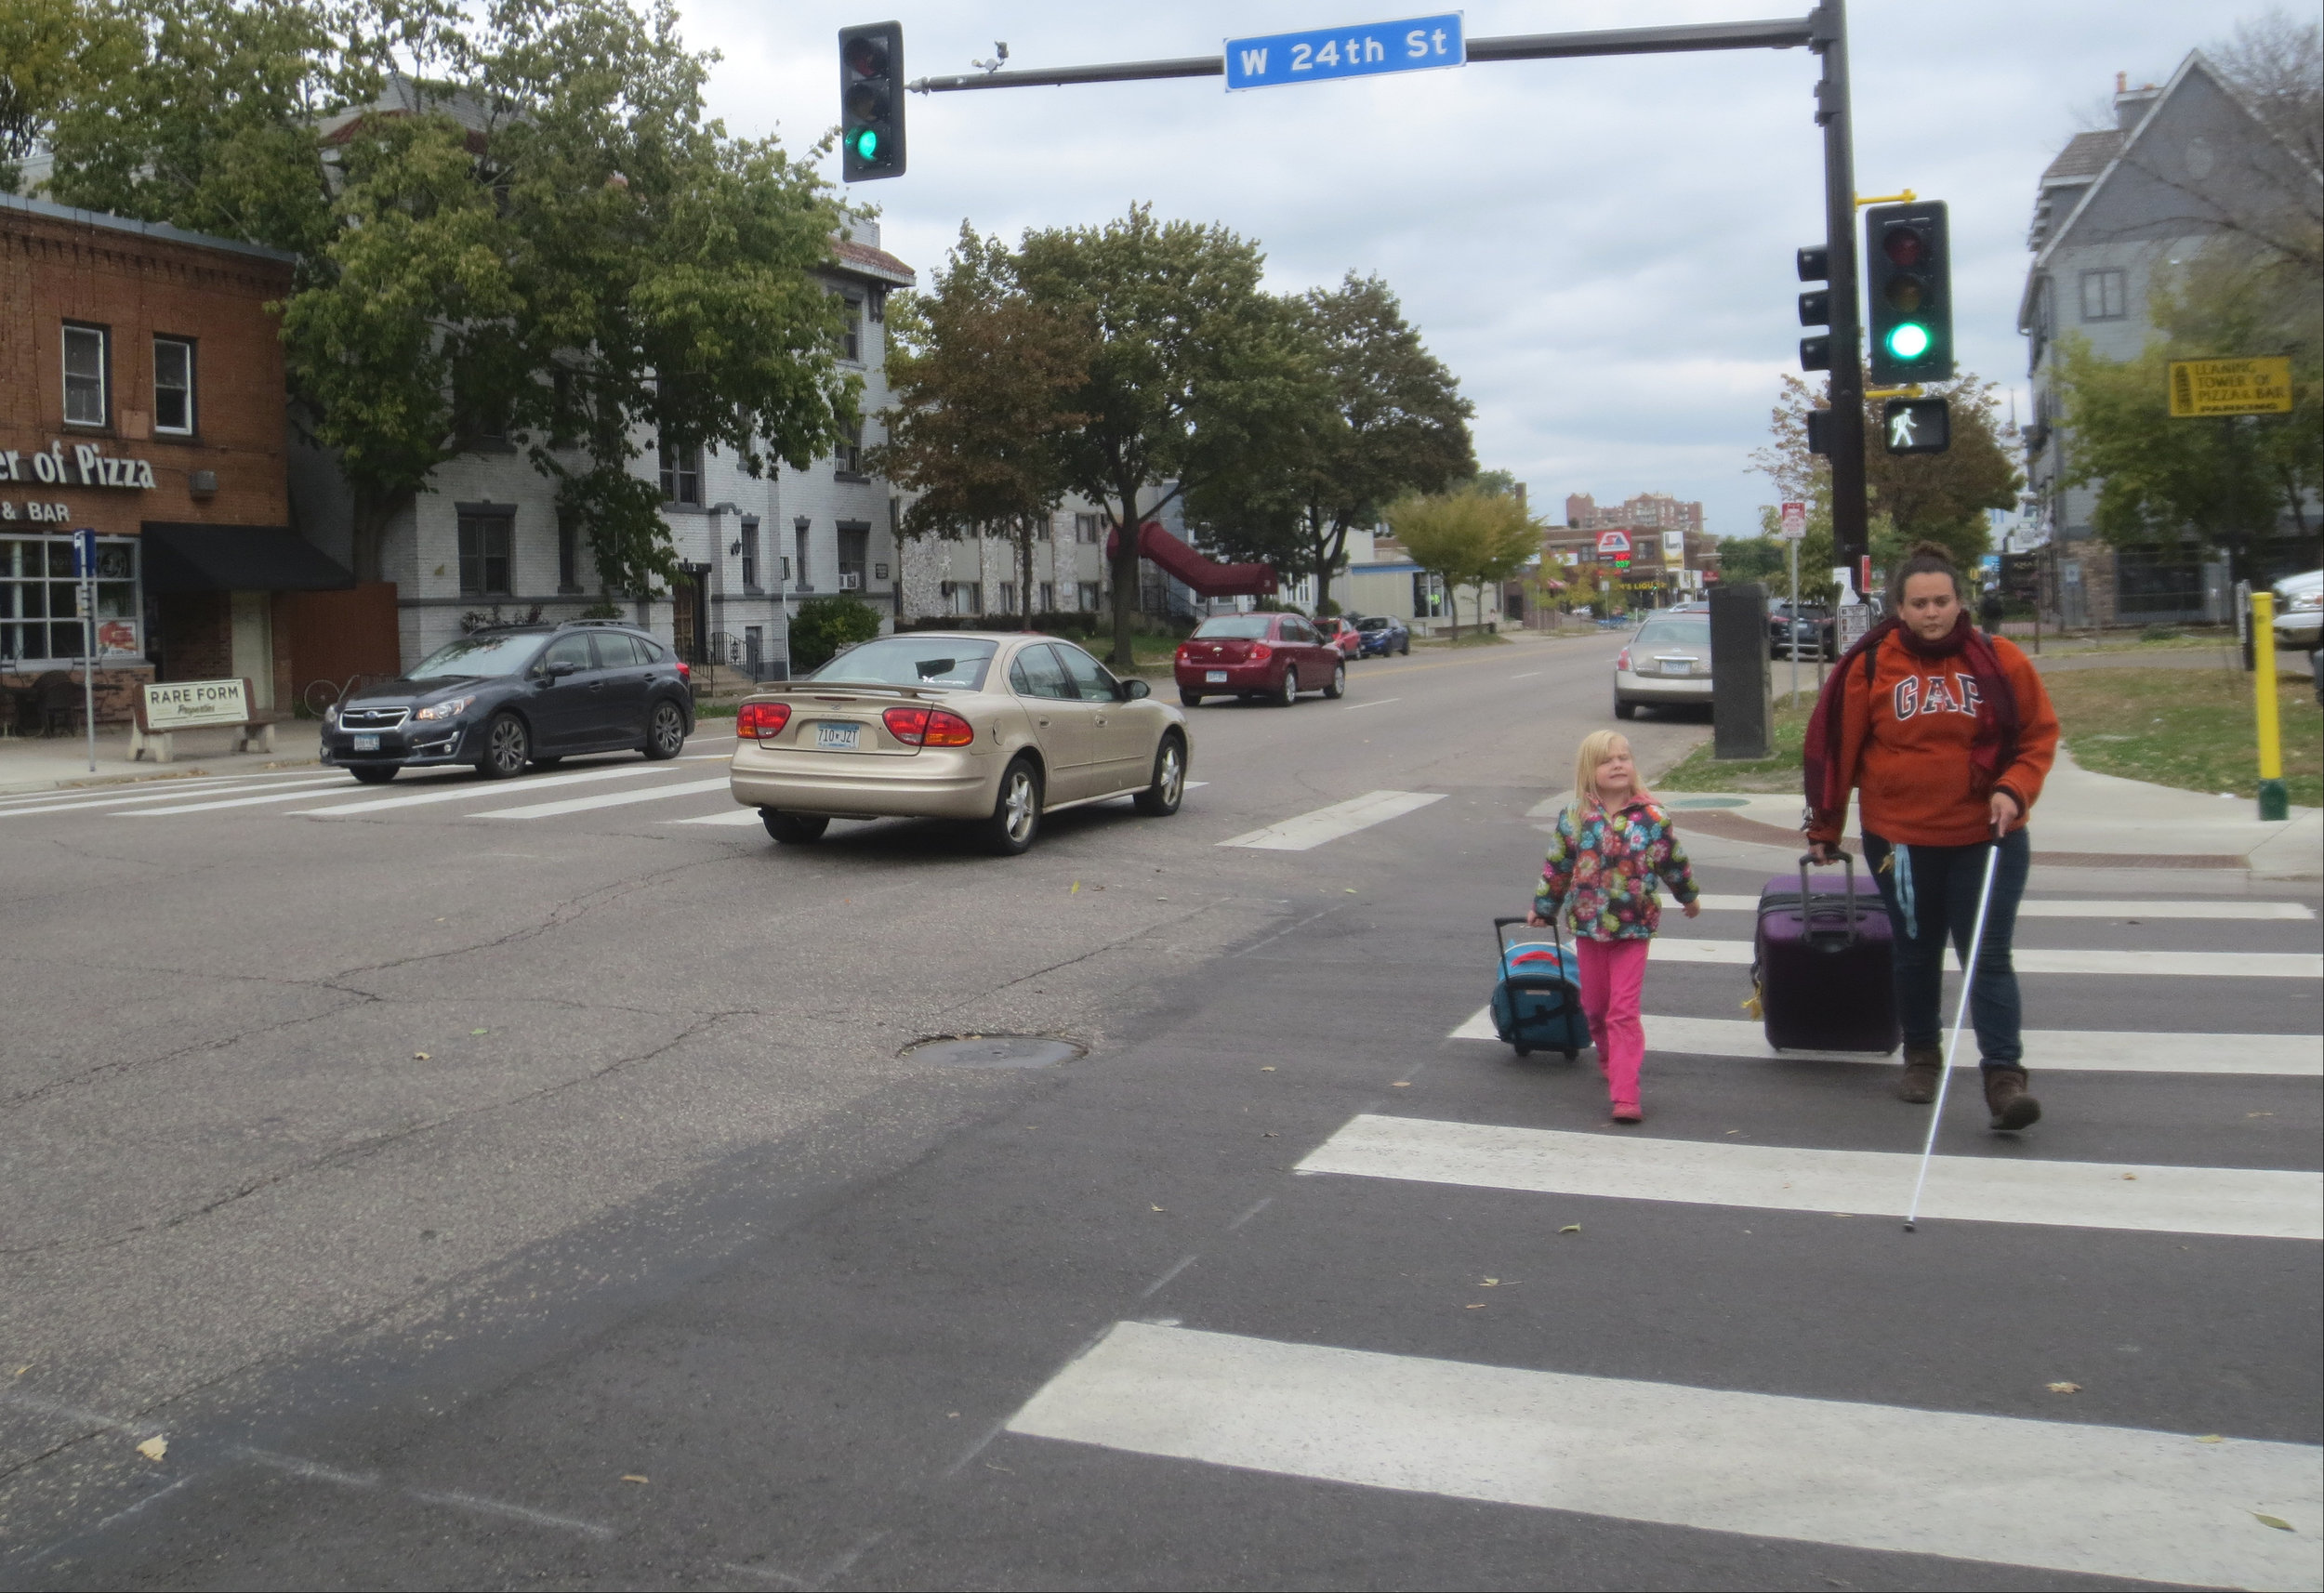 A woman with a white support cane walks with a small girl in a crosswalk along West 24th Street. Both are pulling rolling suitcases and are crossing with the right of way while motor vehicle traffic travels in the road next to them.